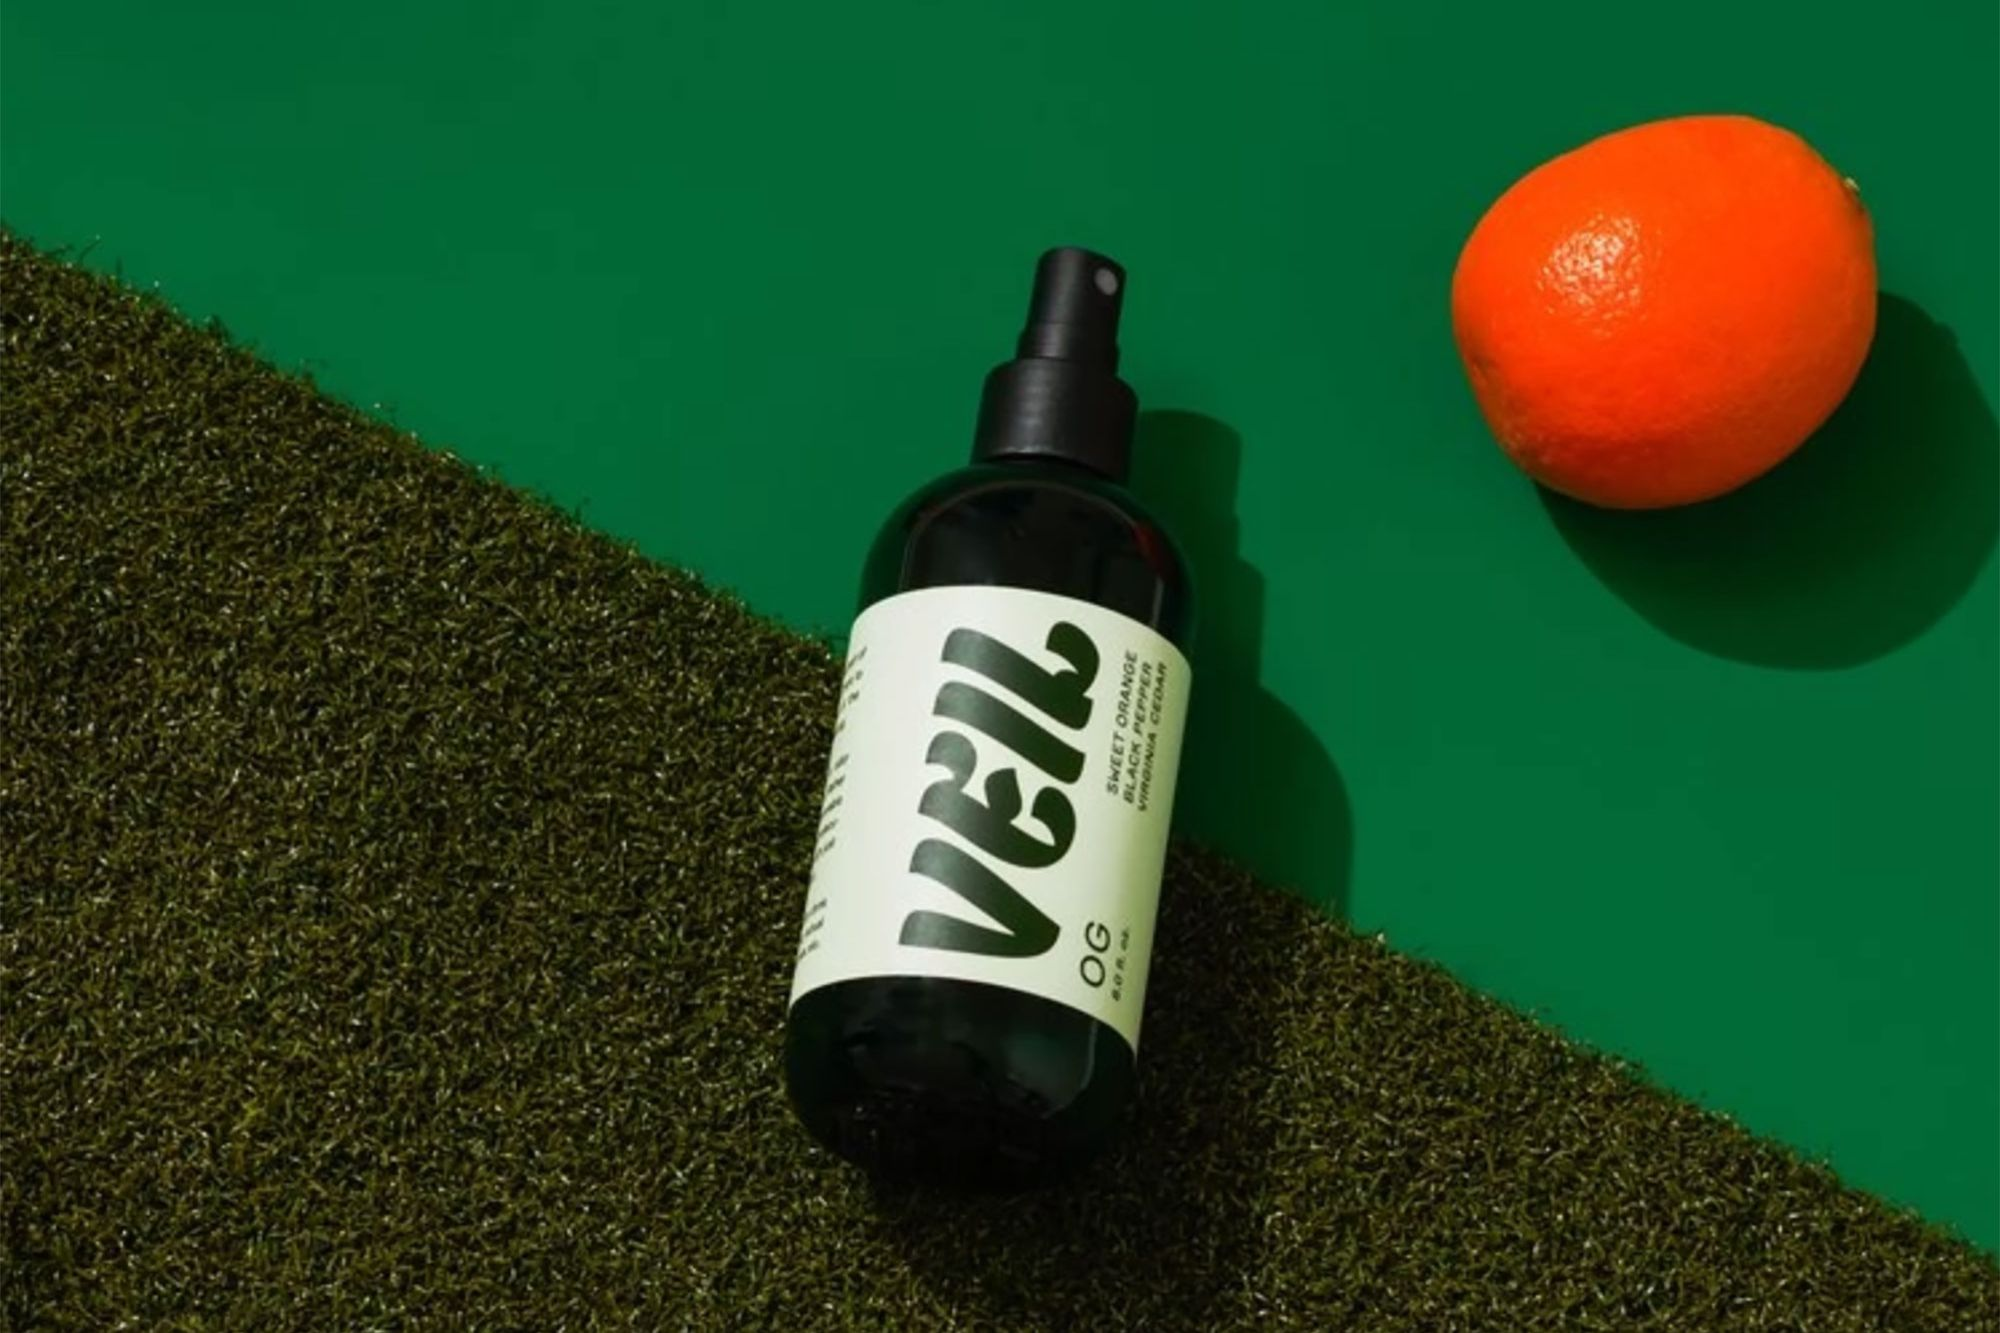 A Marijuana Spray Called Veil Helps Mask Smoke Scent, And Its Co-Founder Details The Difficulty In Launching